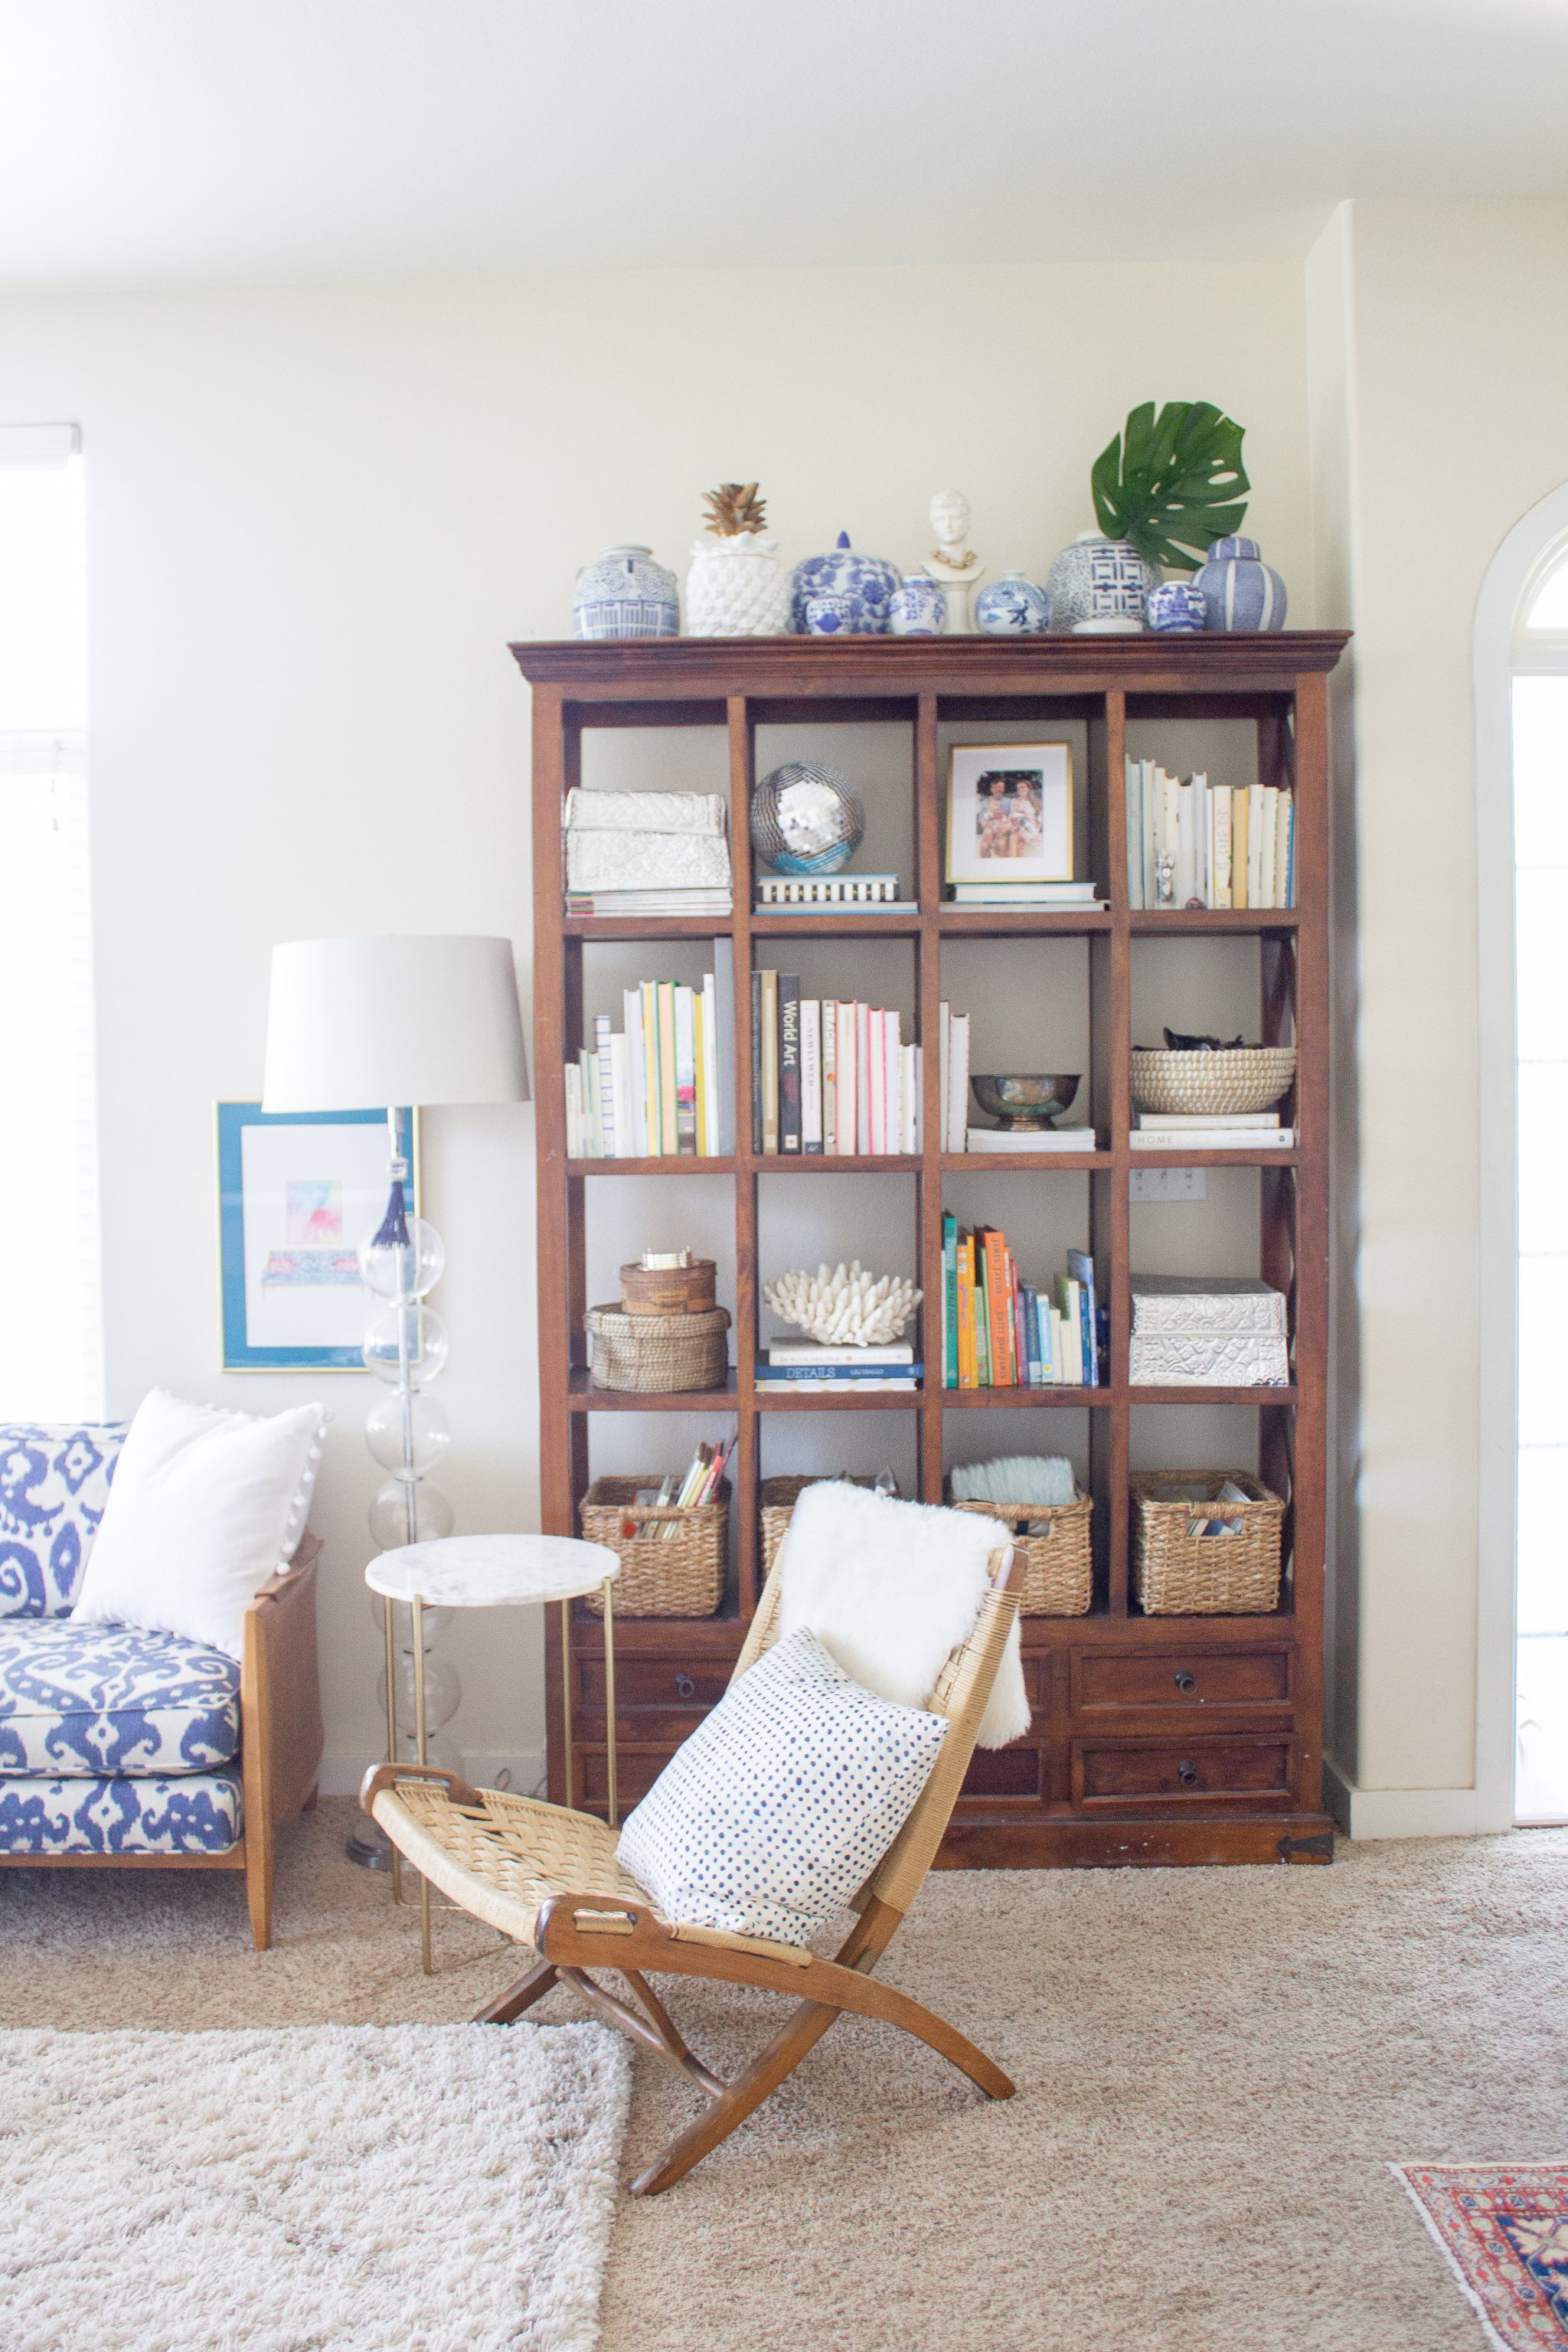 woven chair - tall bookcase - marble accent table - blue and white sofa - ikat sofa - vintage sofa